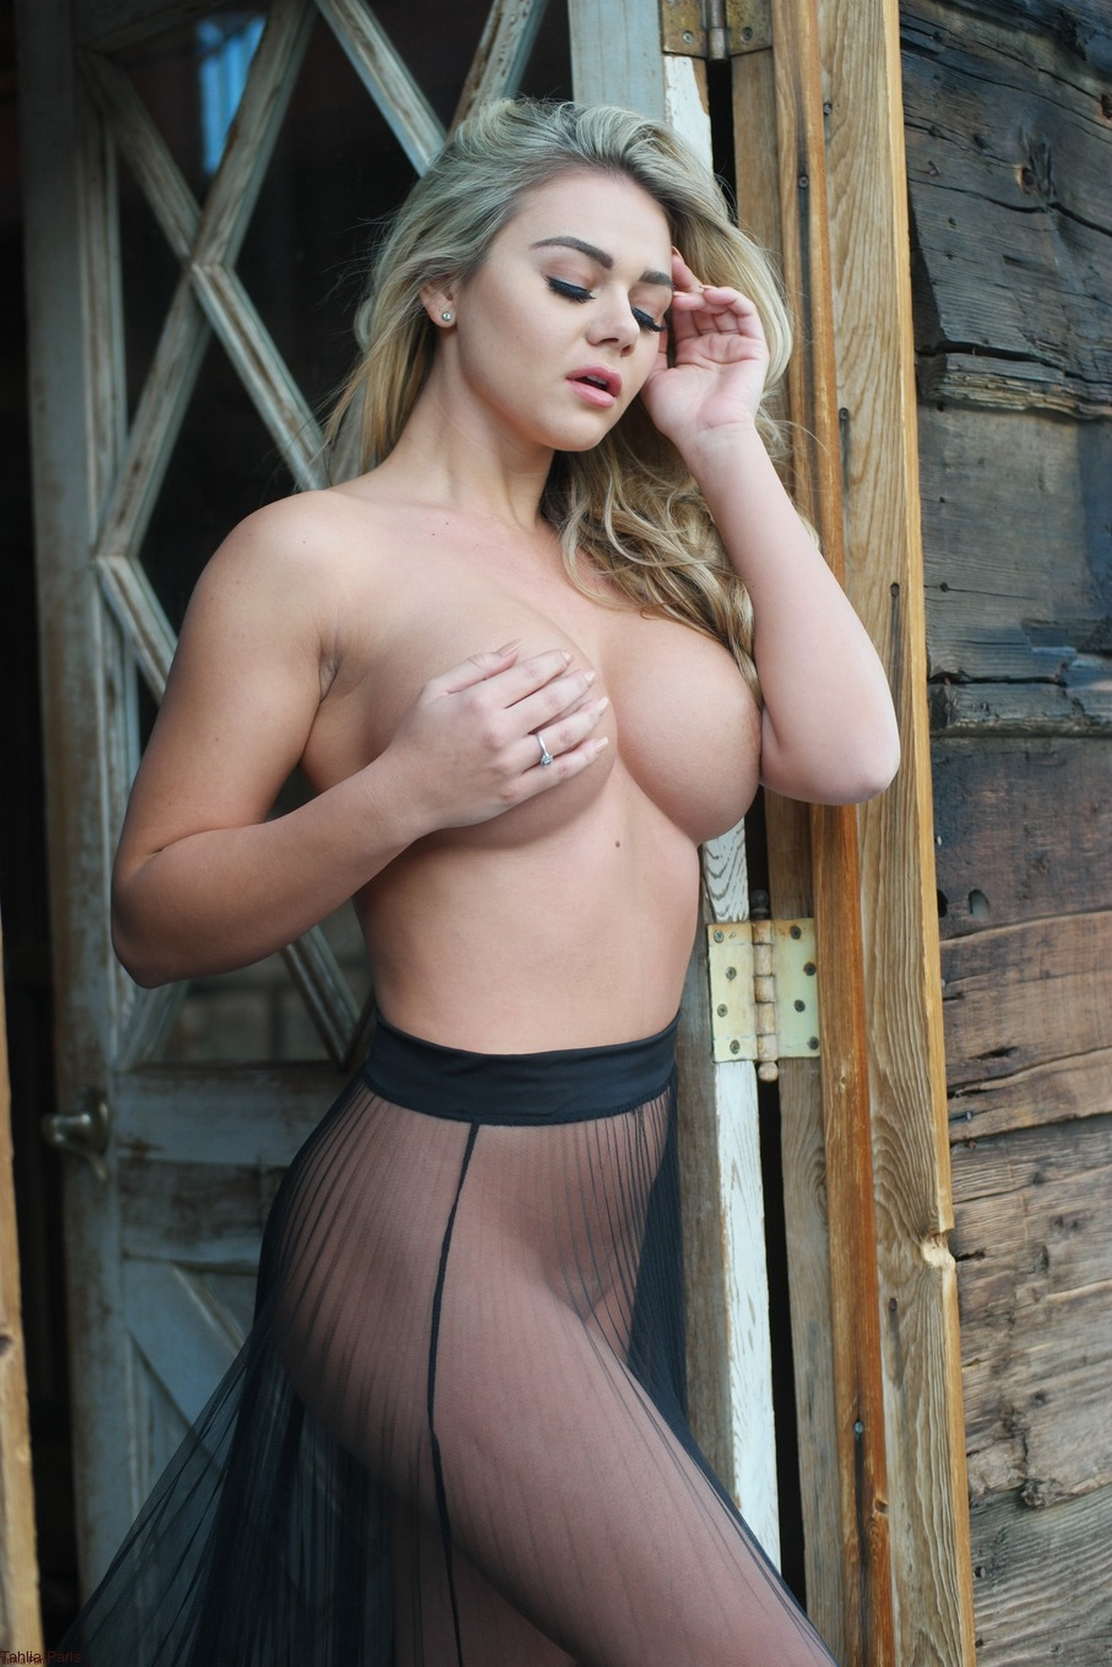 Hot blonde country girl naked